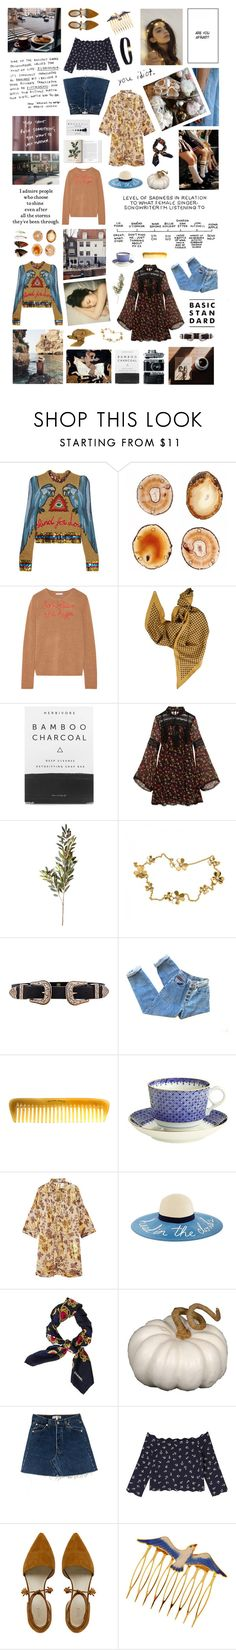 """""""Said he's on his own, but his own is you"""" by bitofbritt ❤ liked on Polyvore featuring Gucci, RabLabs, Lingua Franca, Golden Goose, Herbivore, Anna Sui, OKA, Van Cleef & Arpels, B-Low the Belt and Hermès"""